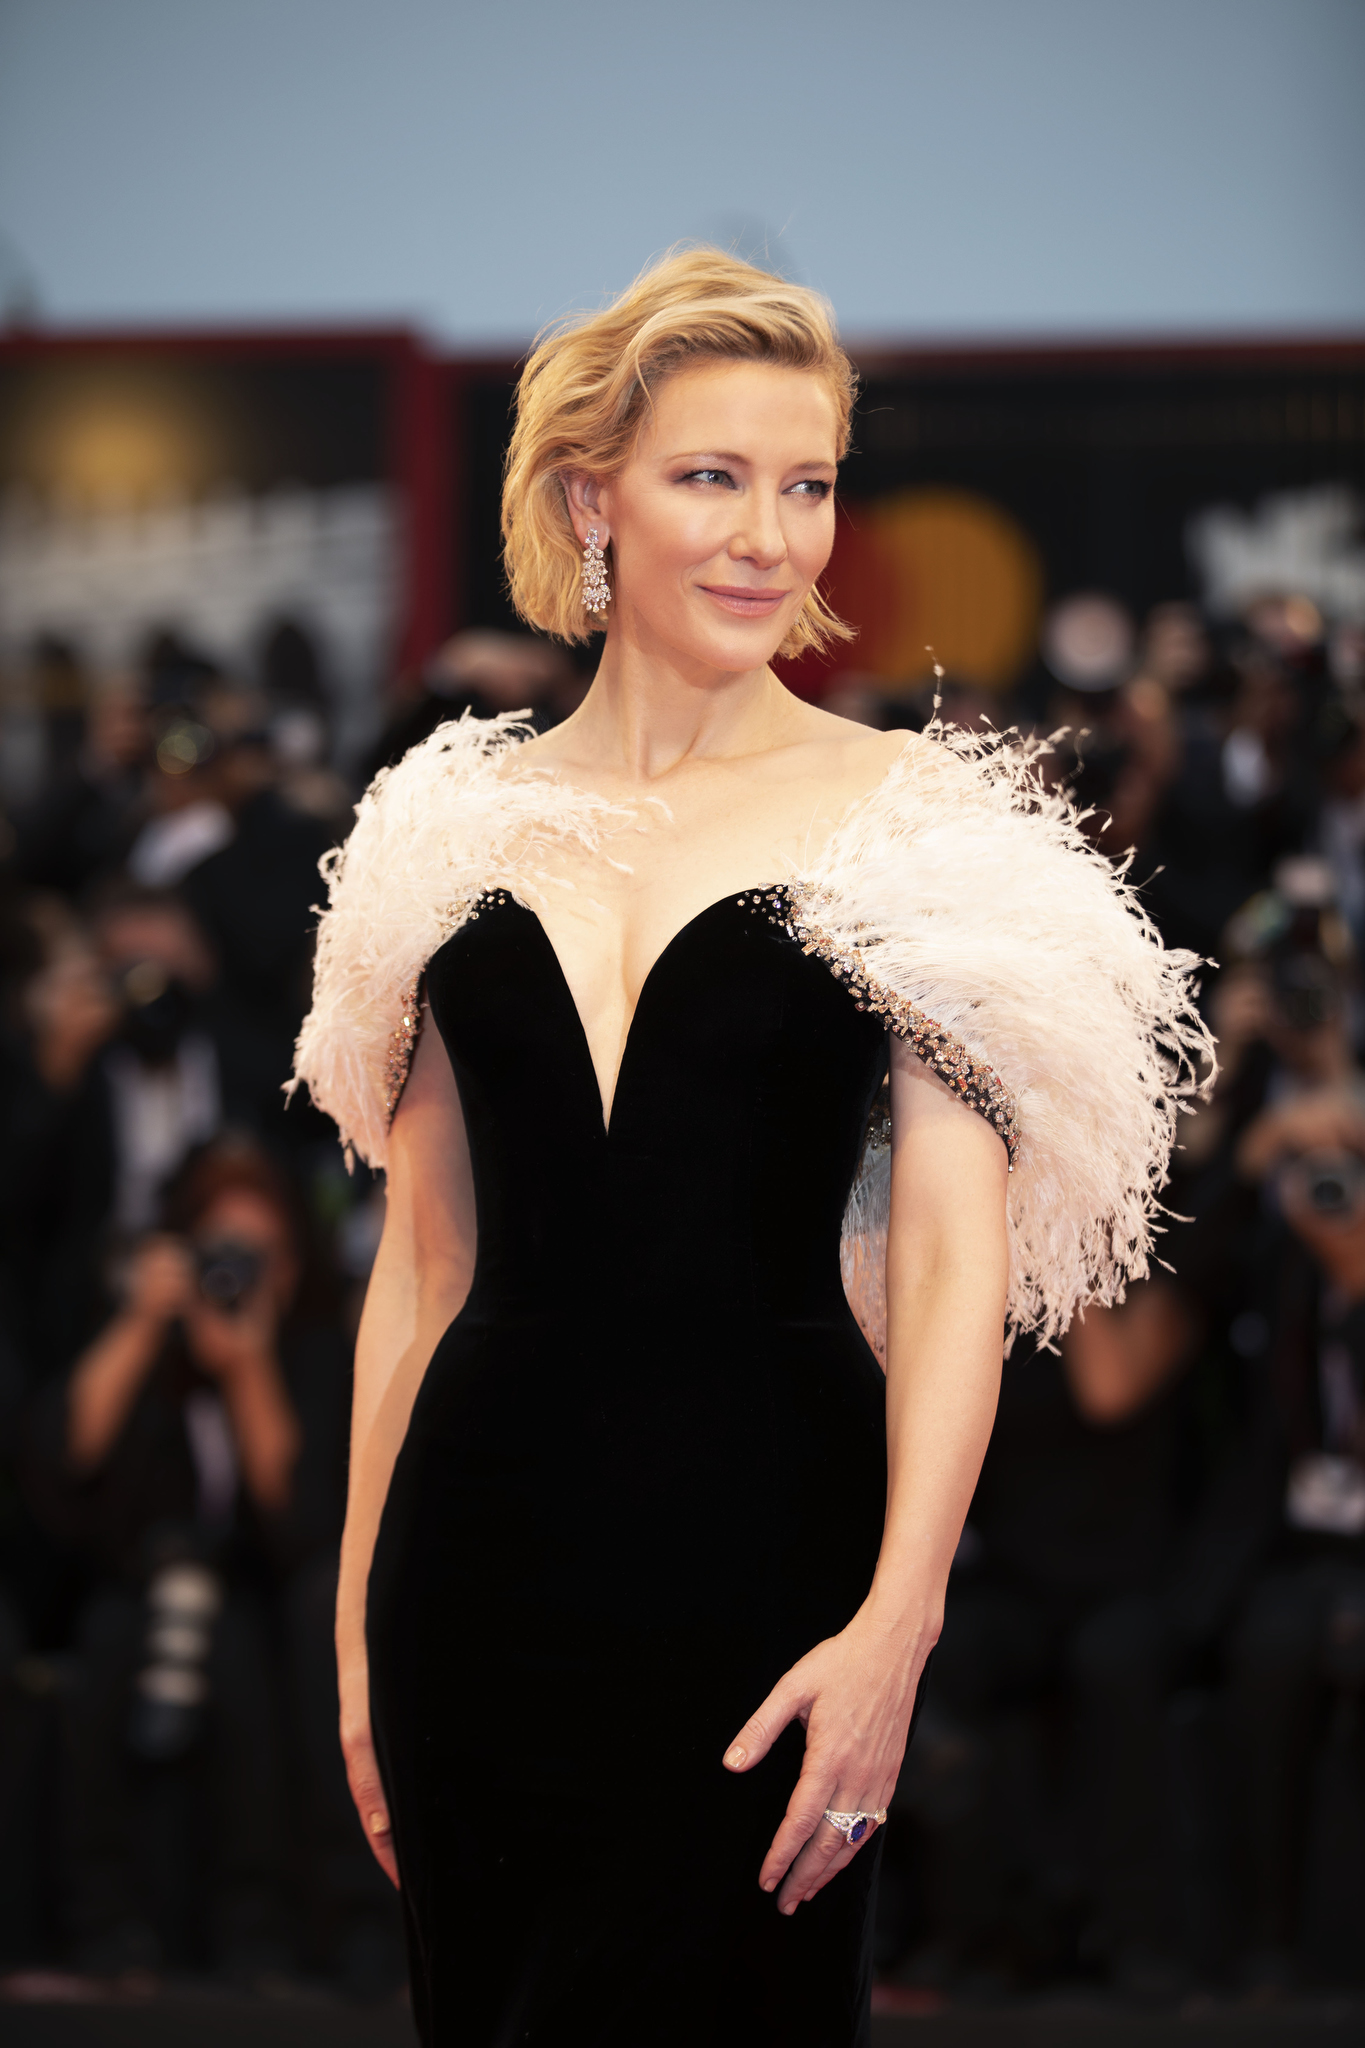 """Actress Cate Blanchett attends the premiere of the film """"A Star Is Born"""" wearing Armani Privé during the 75th Venice International Film Festival in Venice in 2018."""